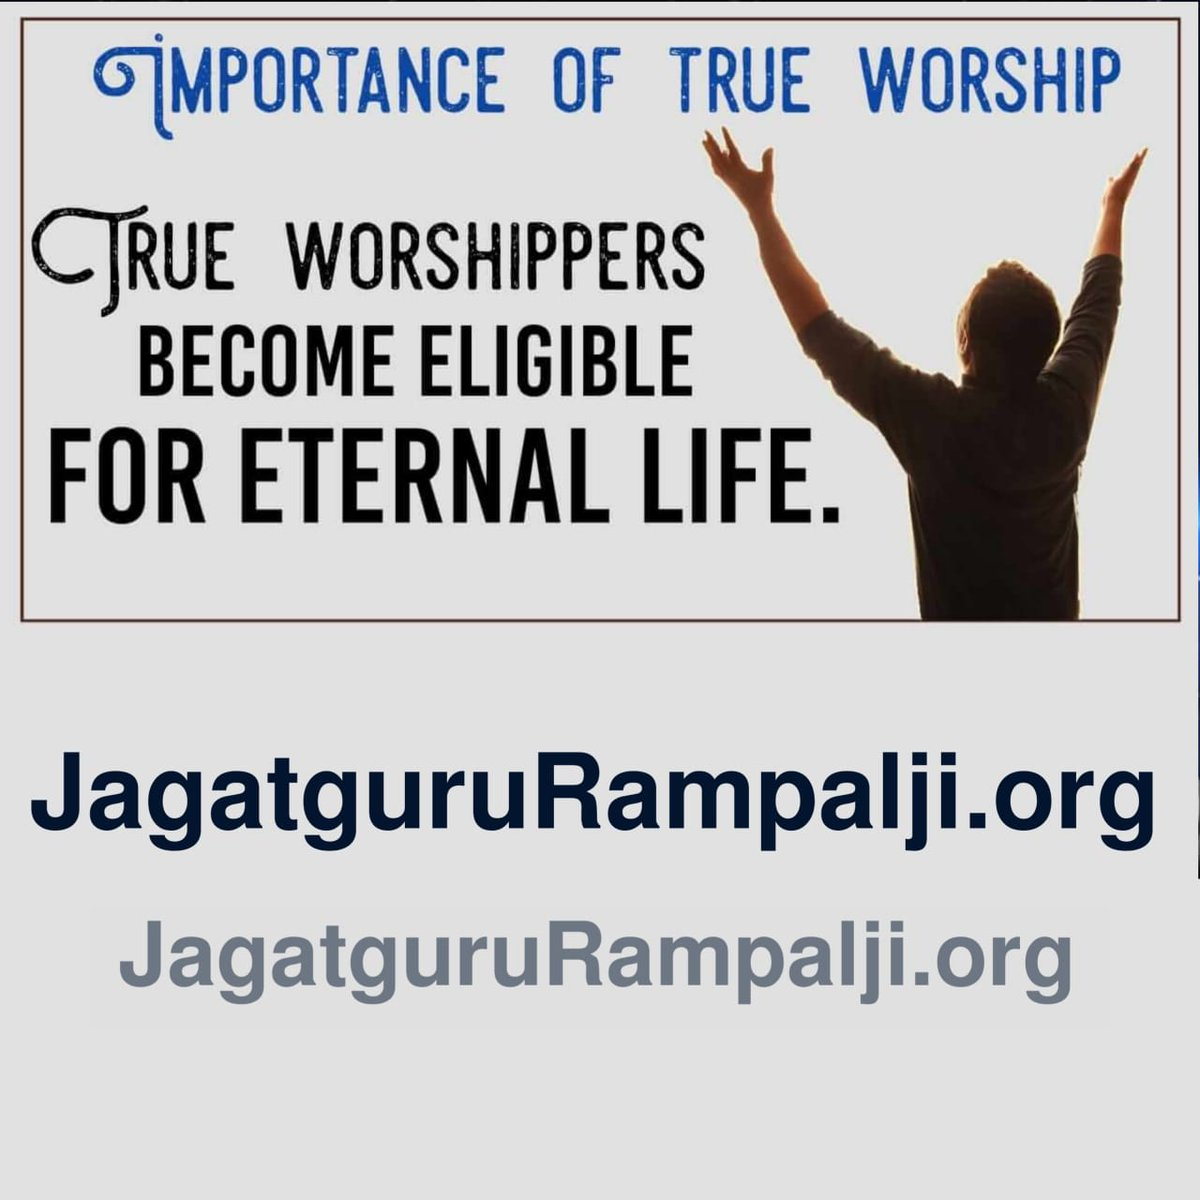 Importance of True Worship.  #WednesdayThoughts <br>http://pic.twitter.com/PvbCu984Pg